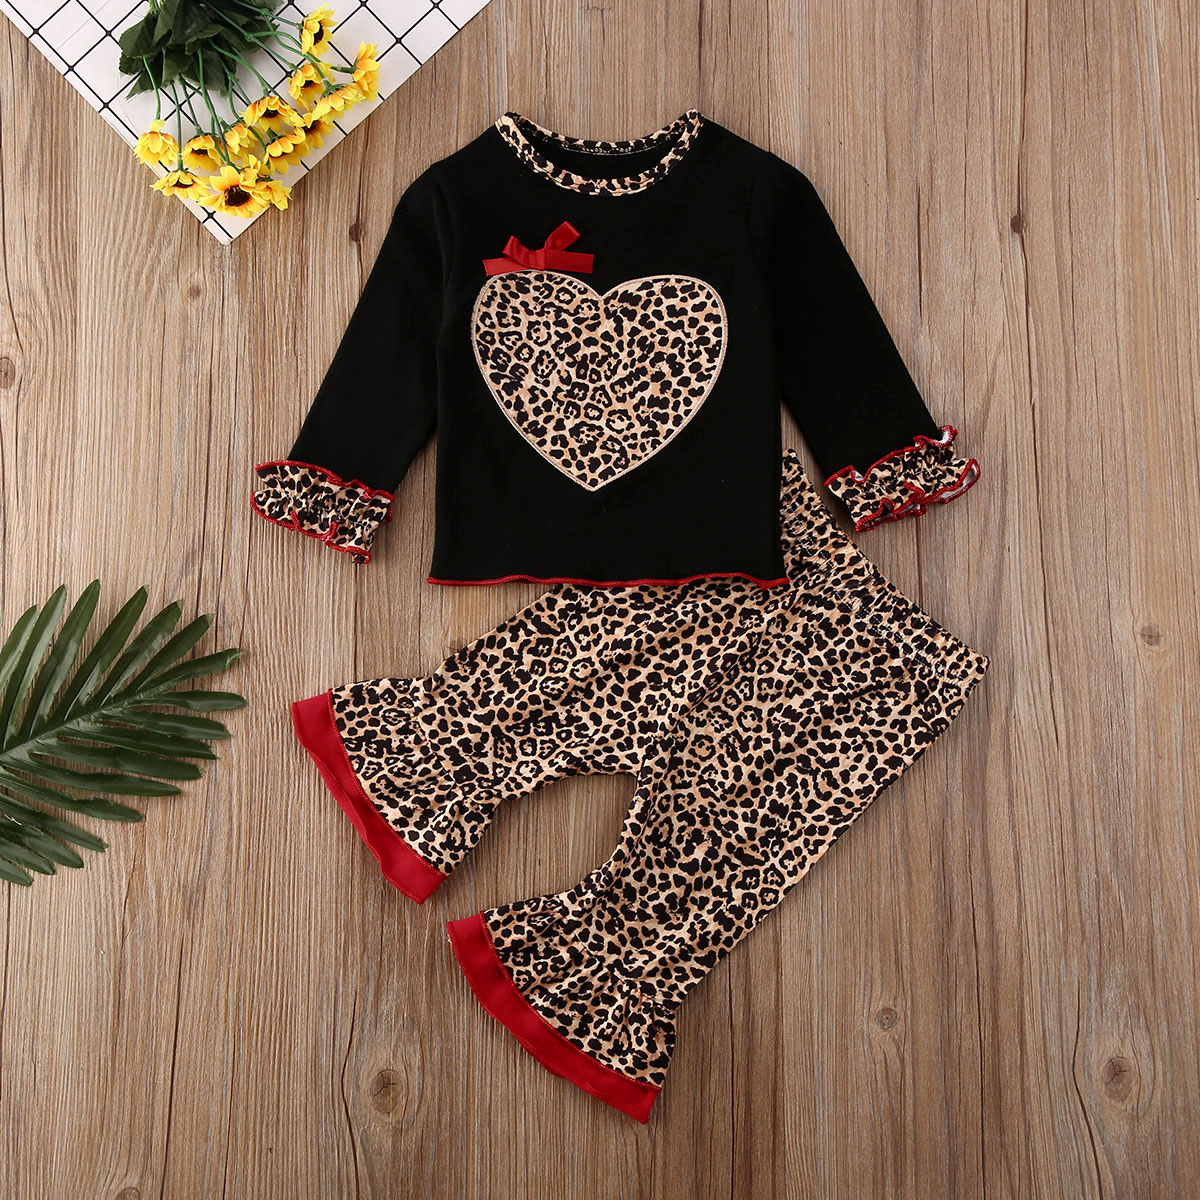 2PCS Girls Leopard Heart Printed Tops Pant Sets Toddler Kids Tracksuits Outfits